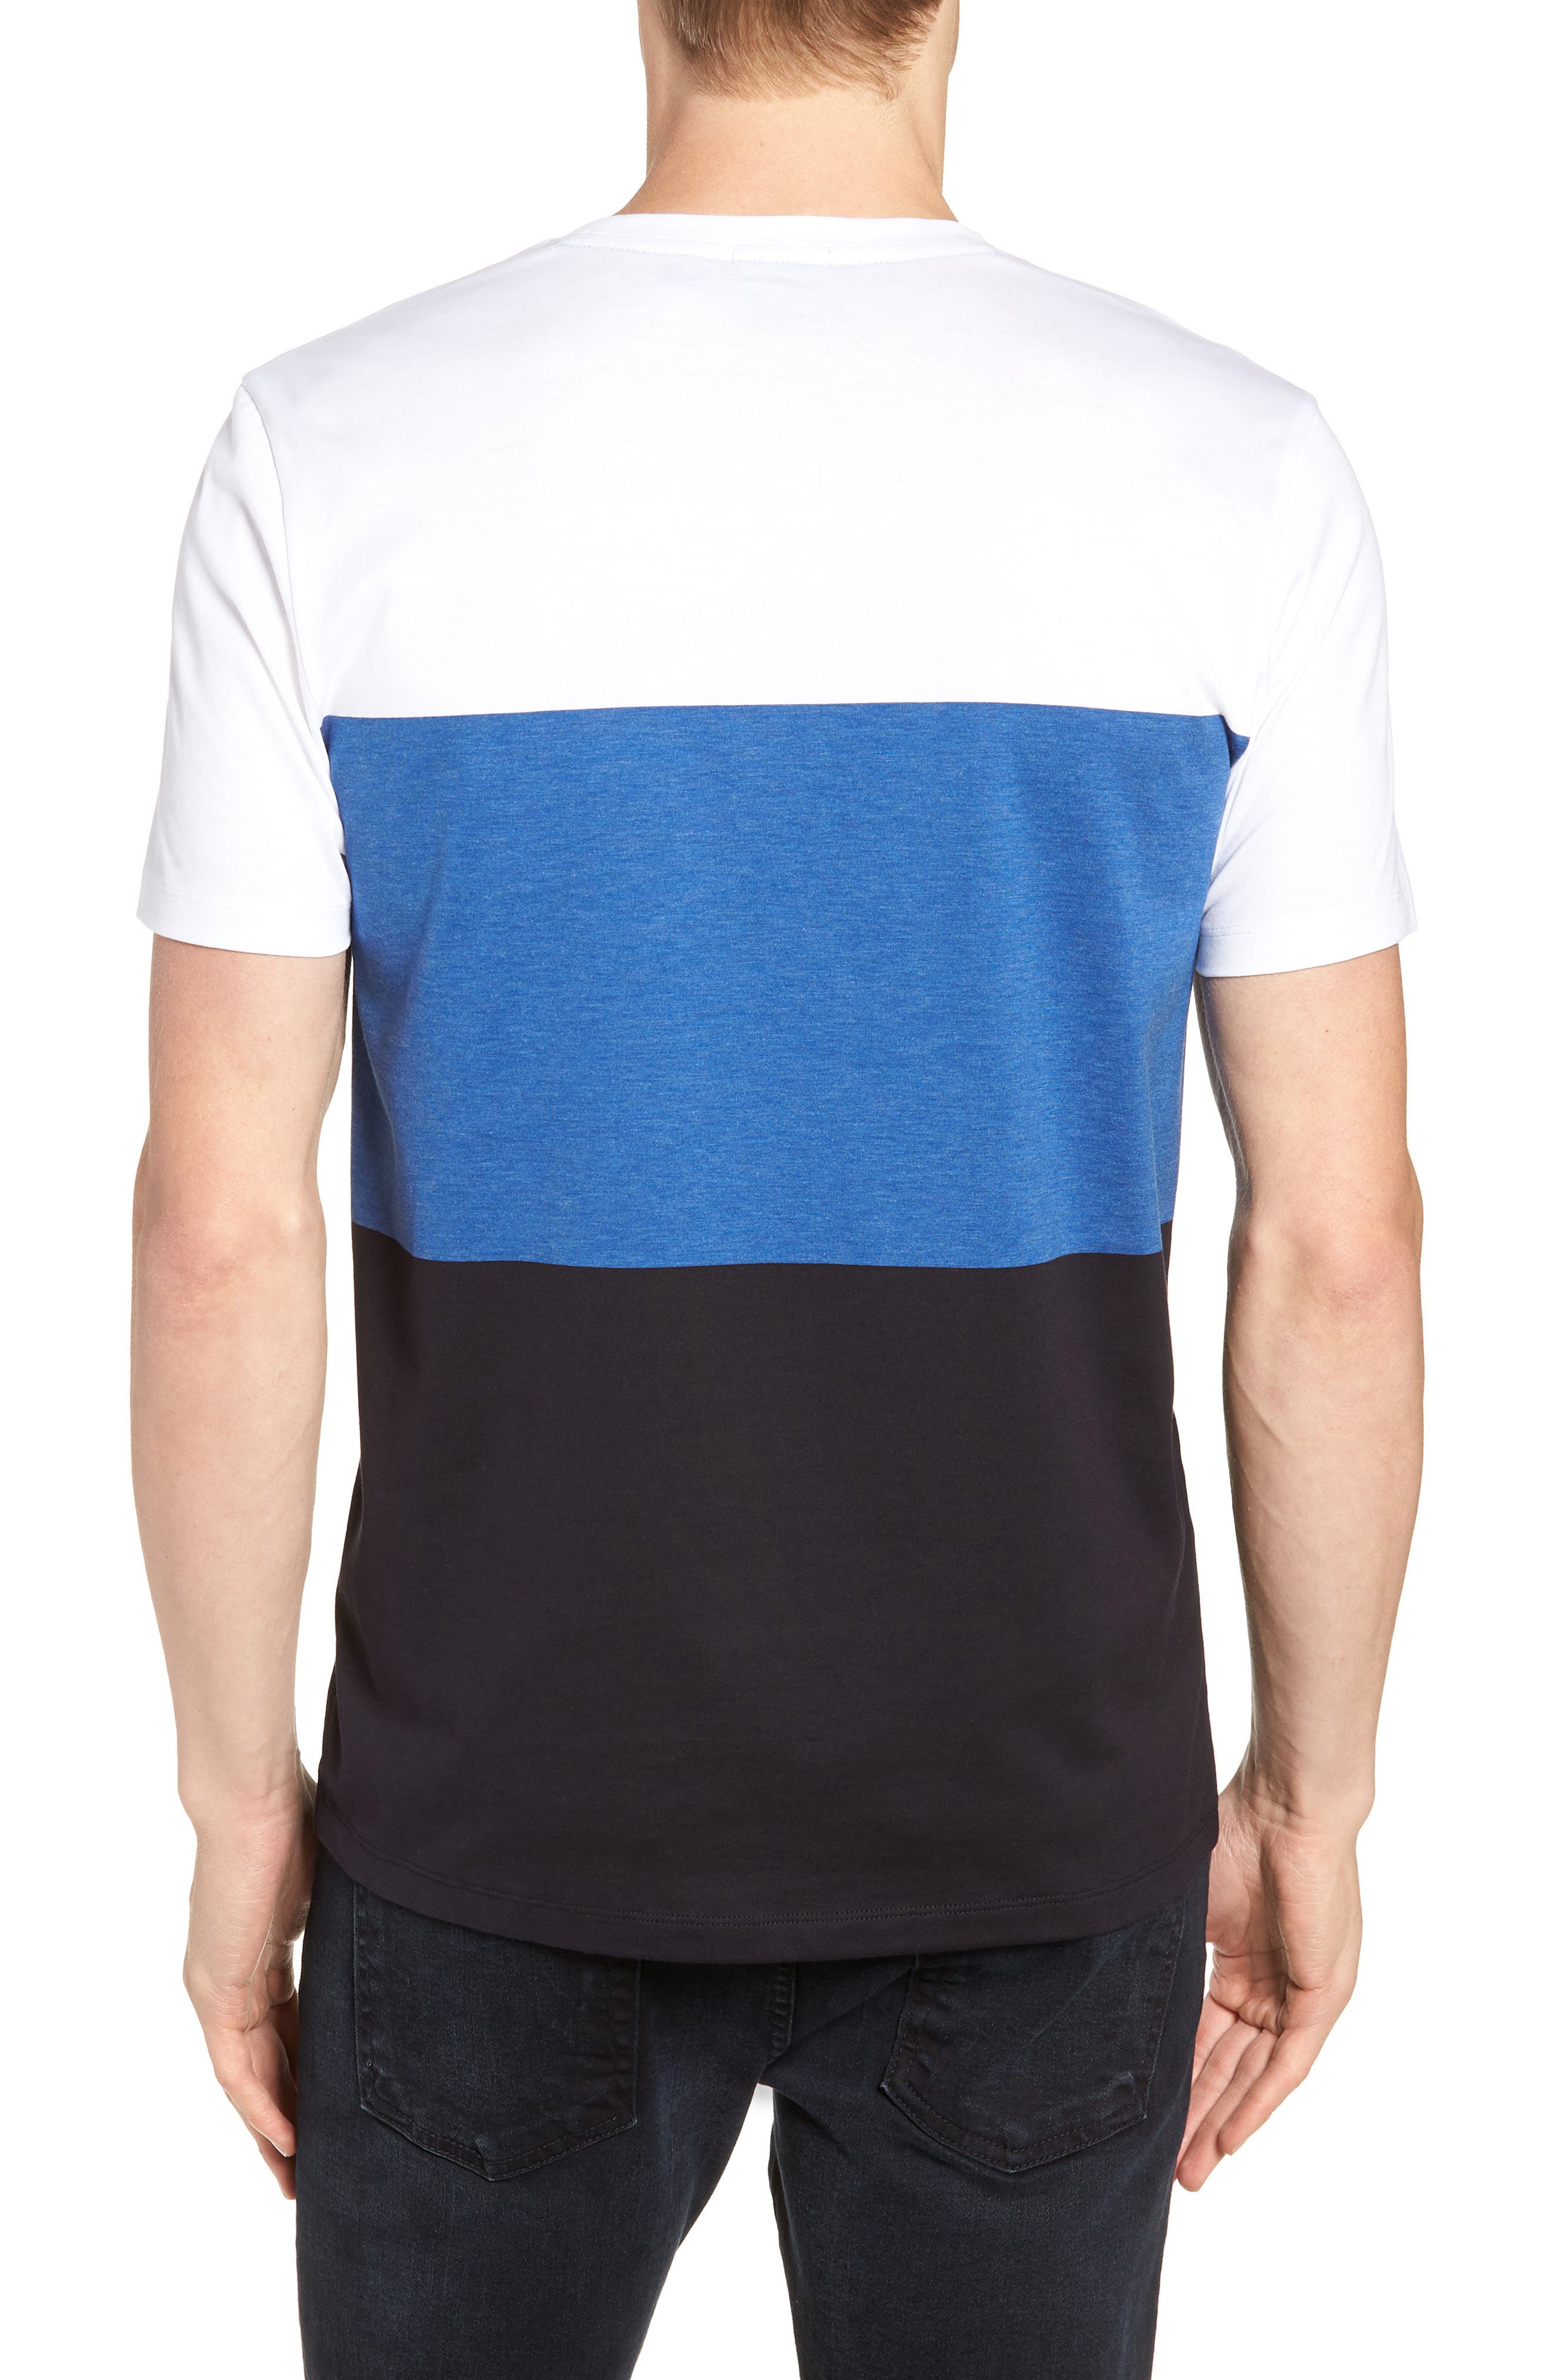 Tessler Colorblock Slim Fit T-Shirt,                             Alternate thumbnail 2, color,                             474